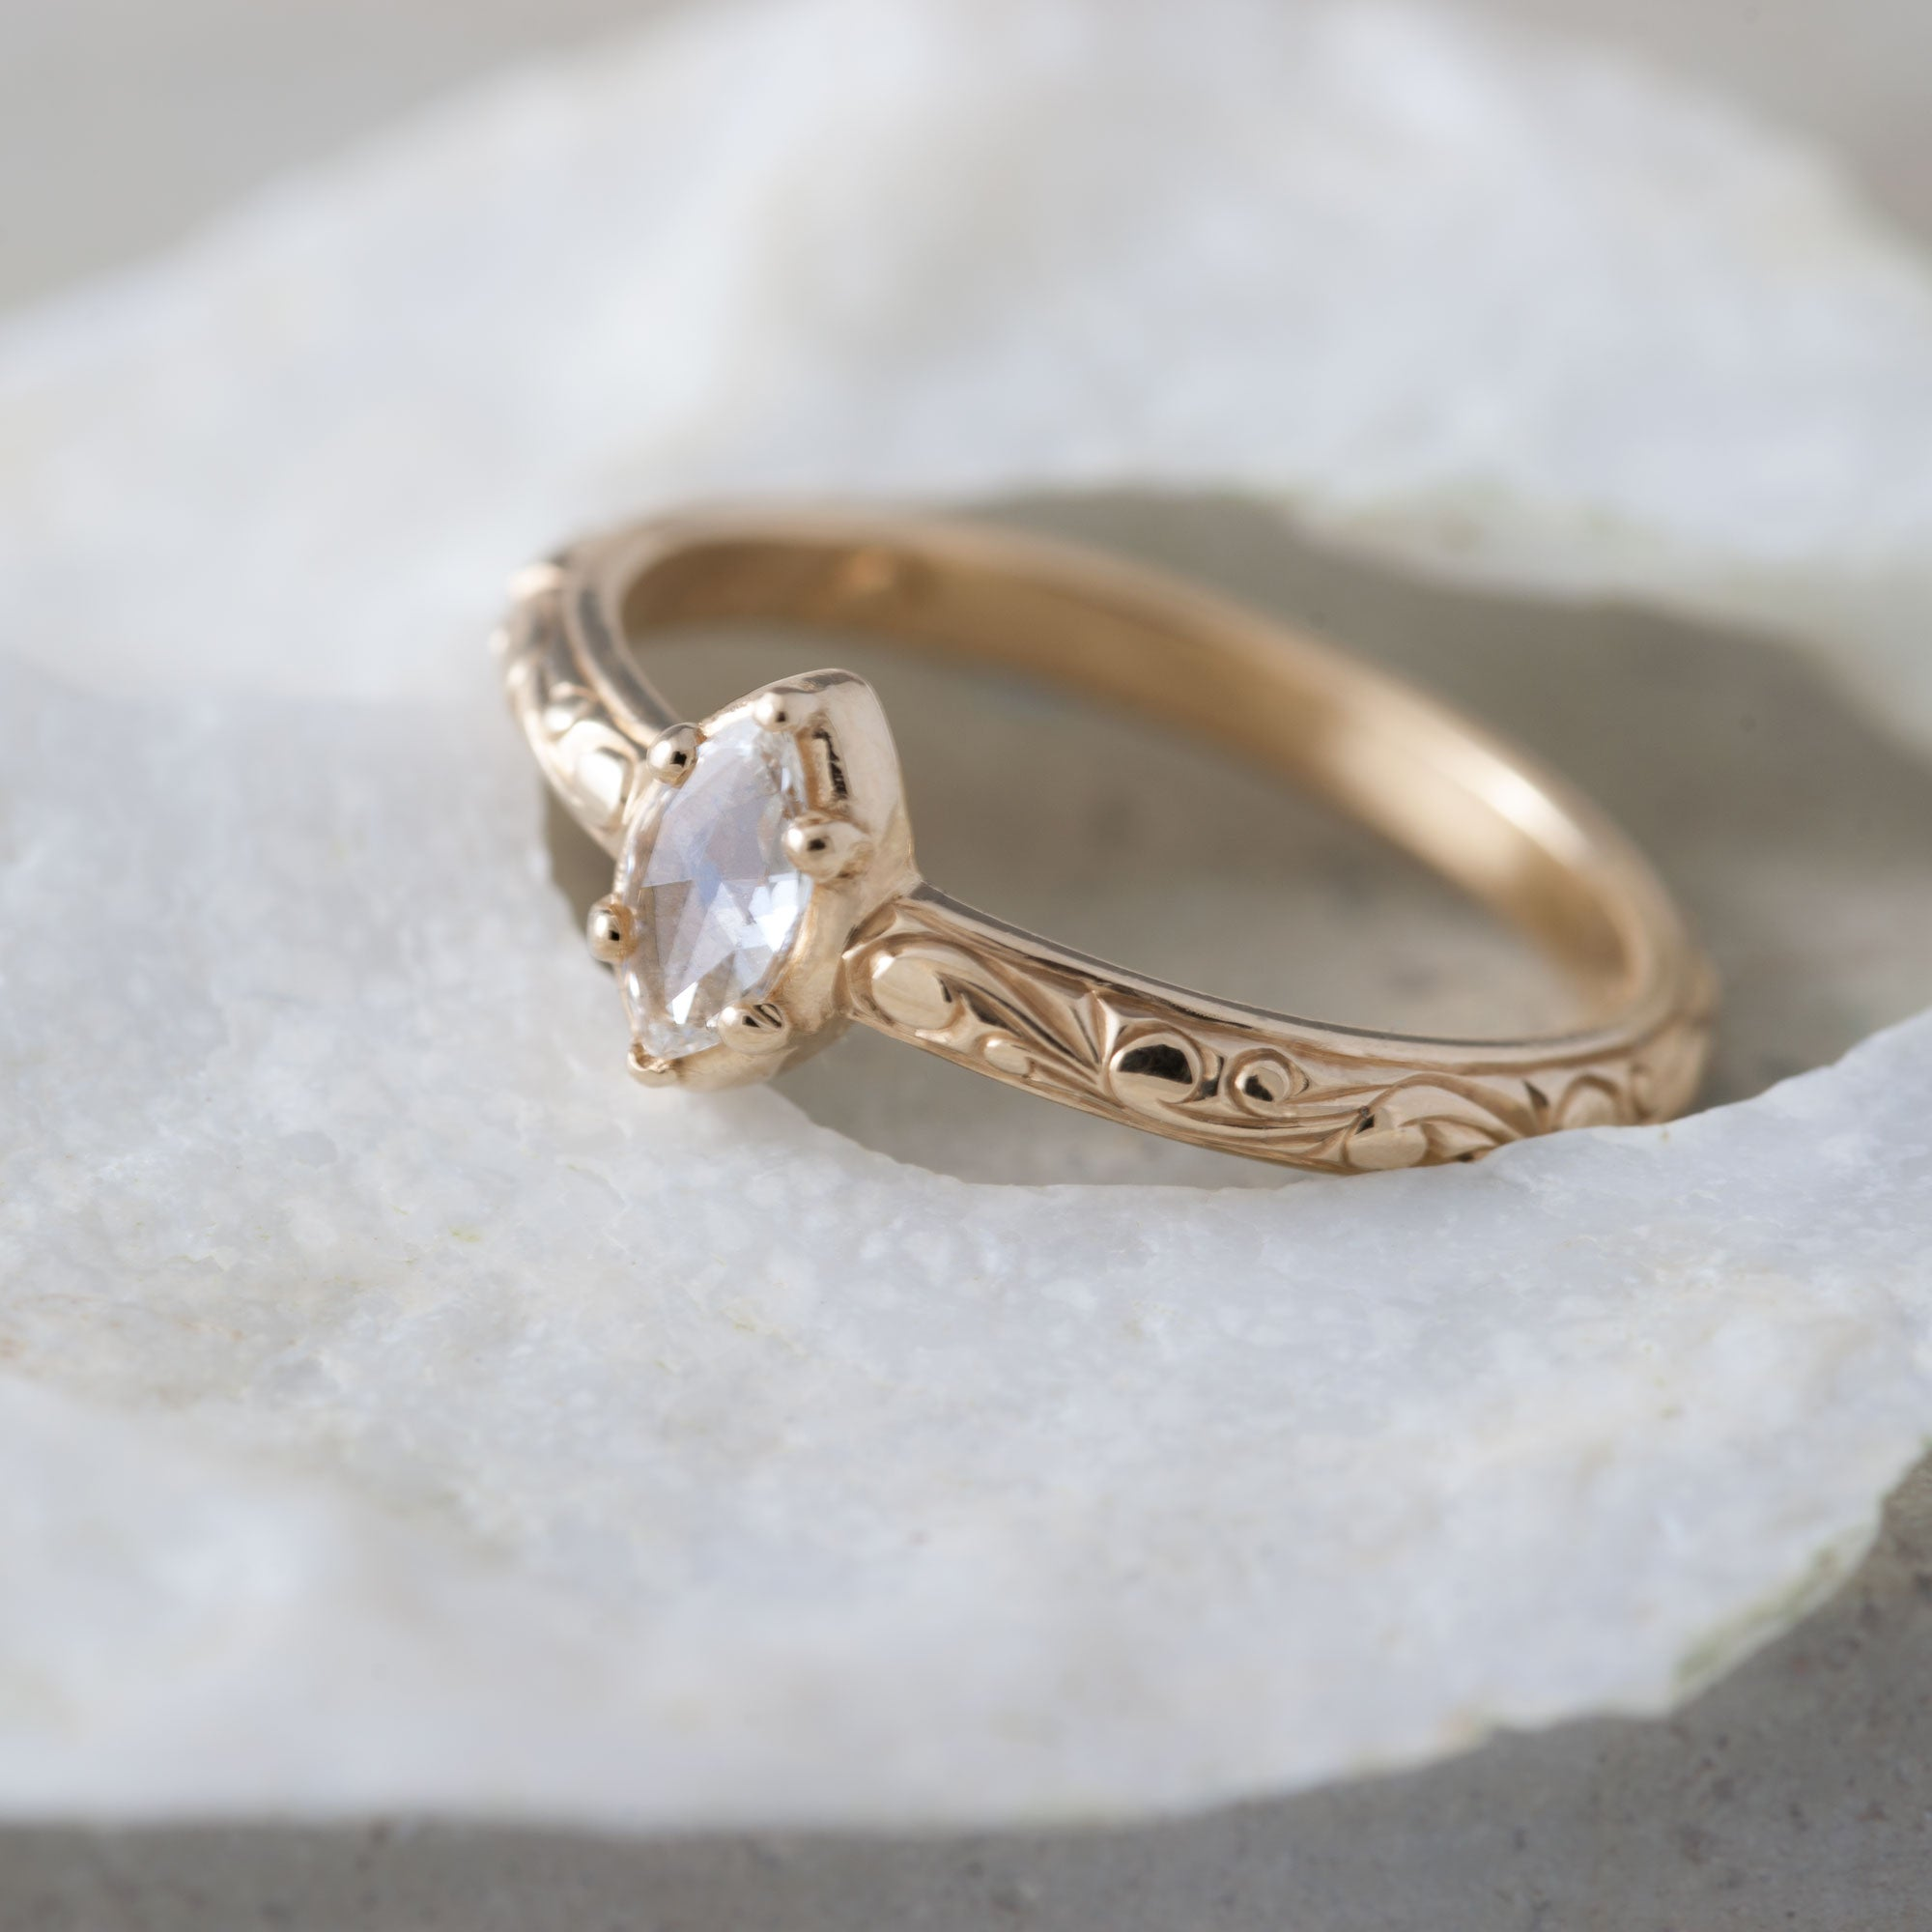 Diamond Engagement Ring | Era Design Vancouver Canada